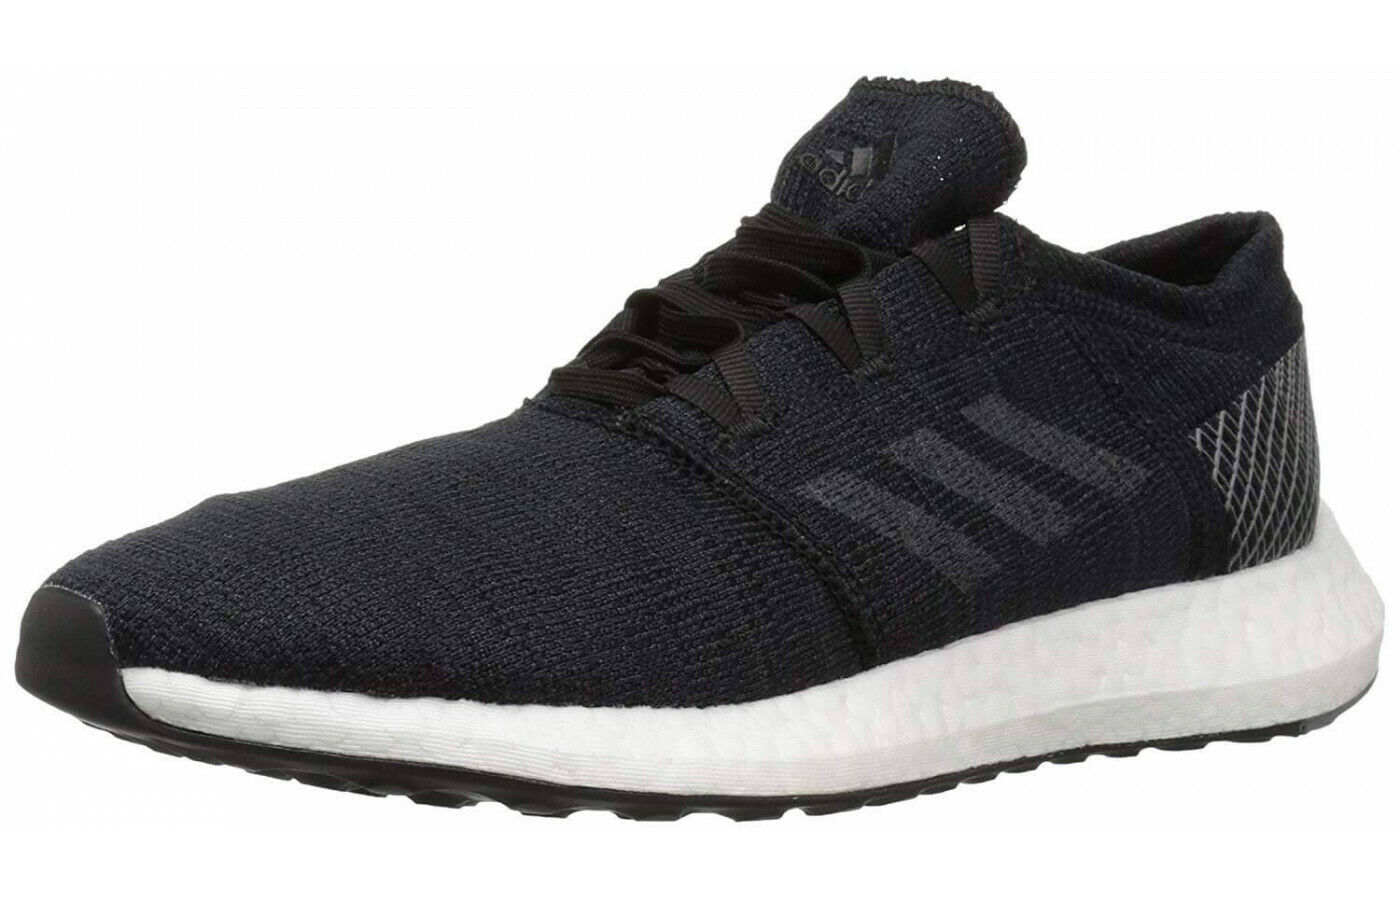 Adidas Men's Pureboost Go Running shoes Black Grey Grey - 11 M US